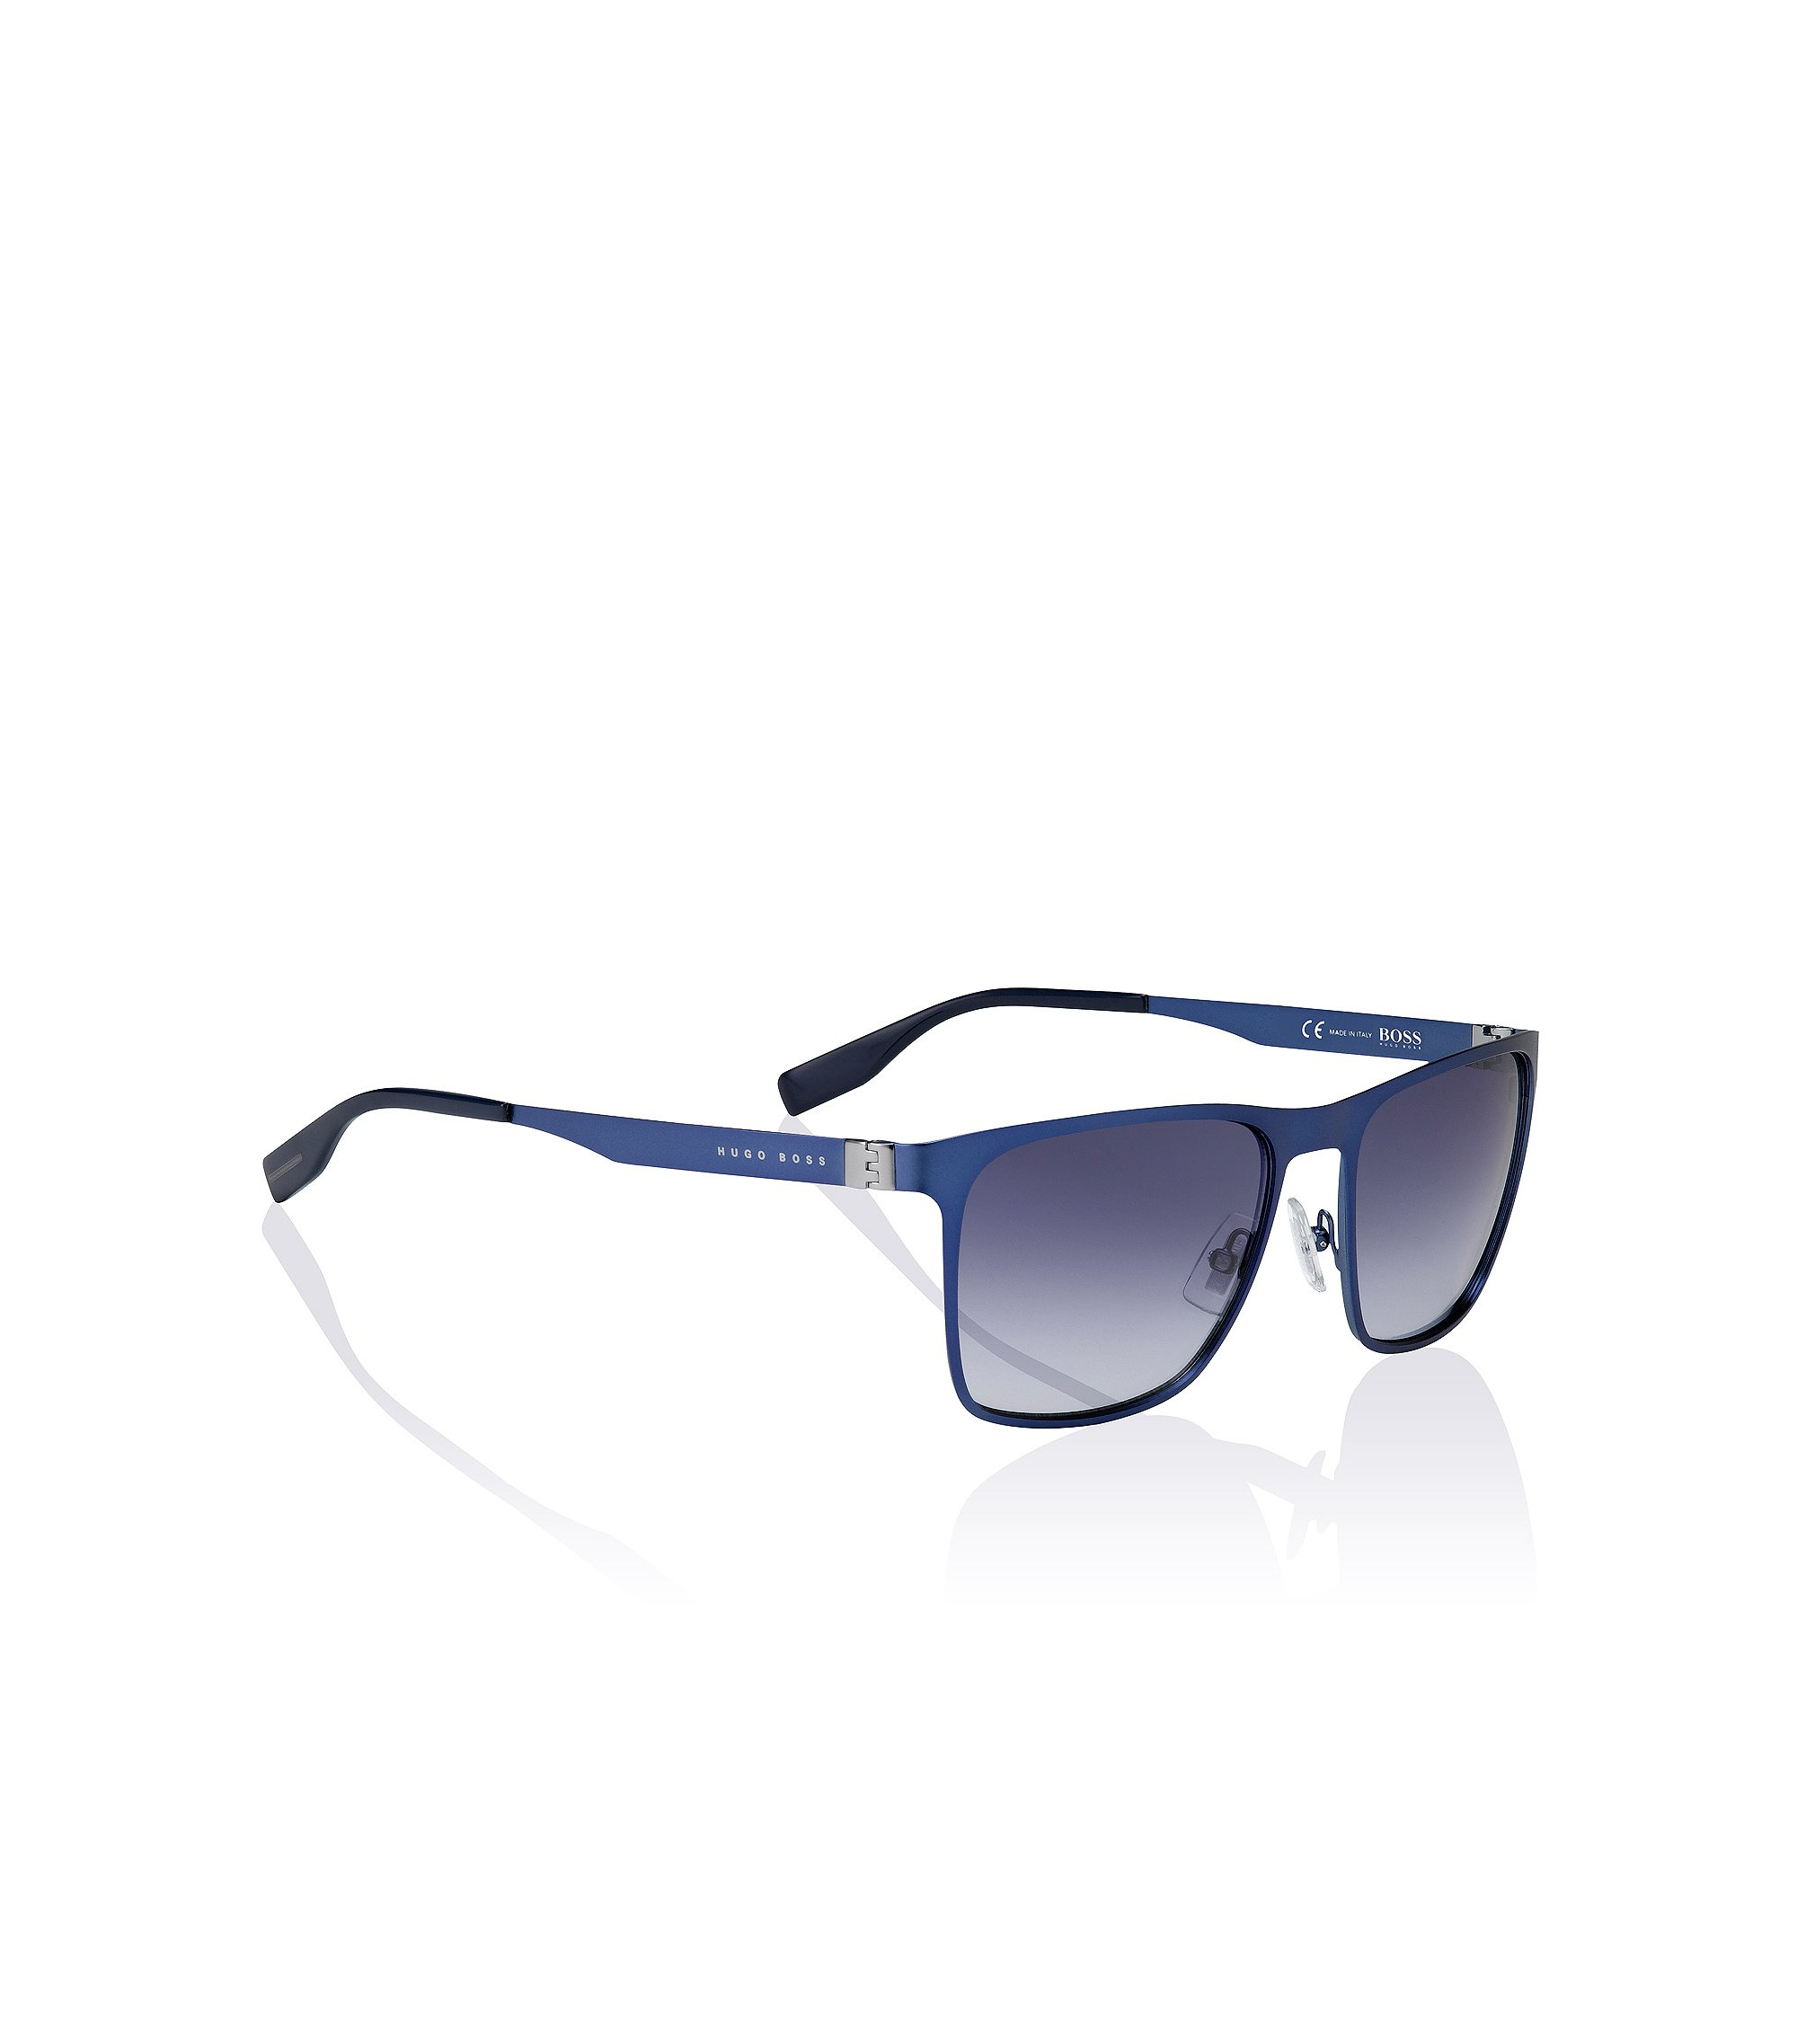 Sonnenbrille ´BOSS 0597/S`, Assorted-Pre-Pack